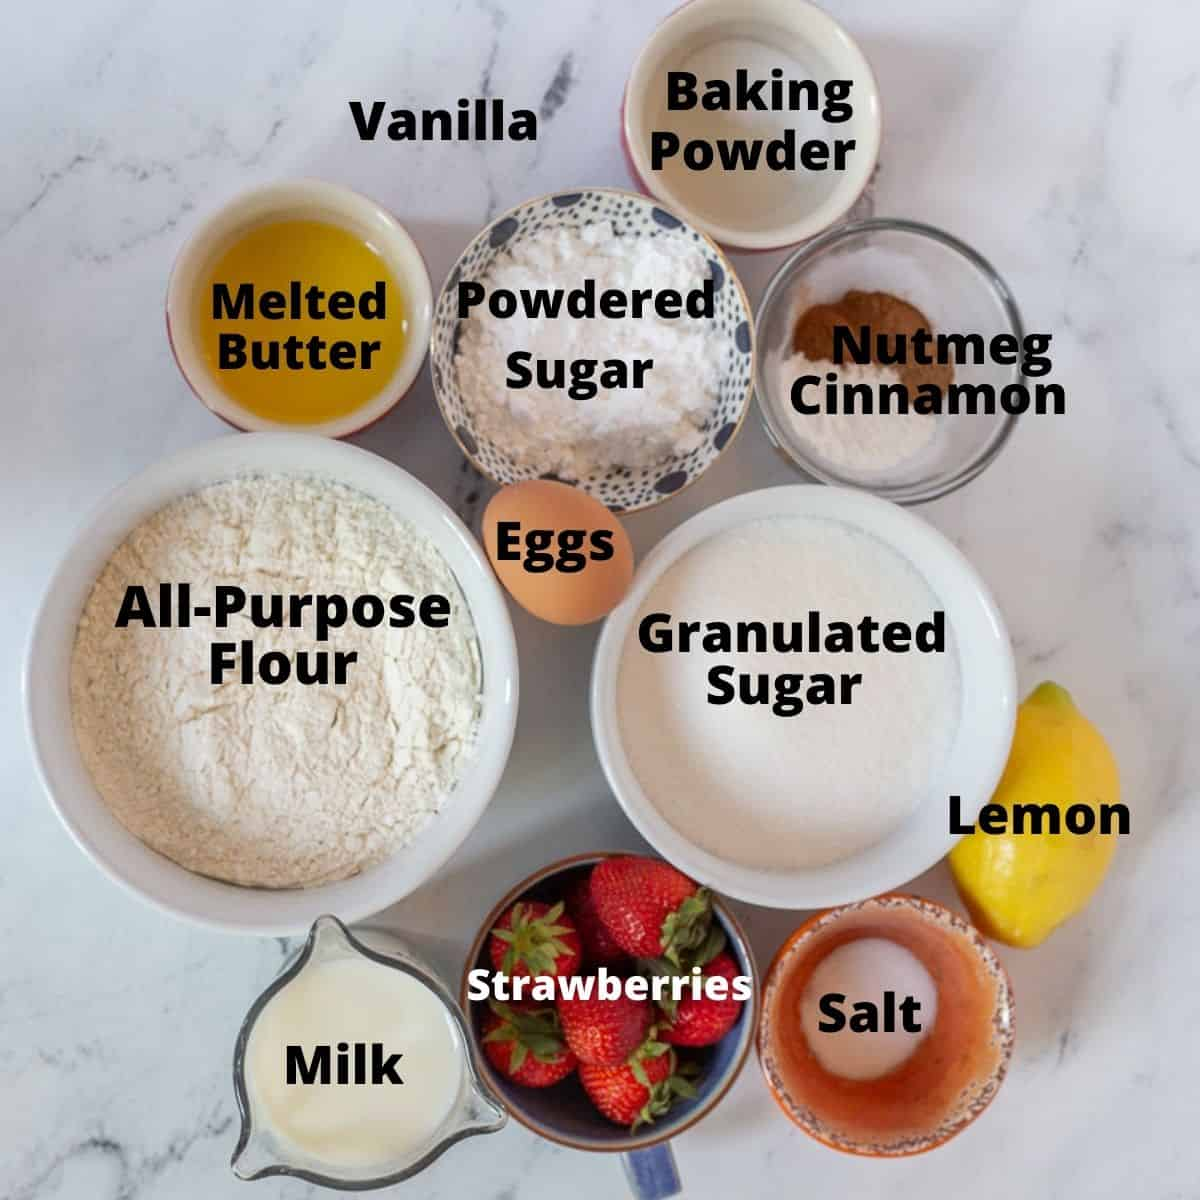 Ingredients for recipe in small bowls with text overlay.